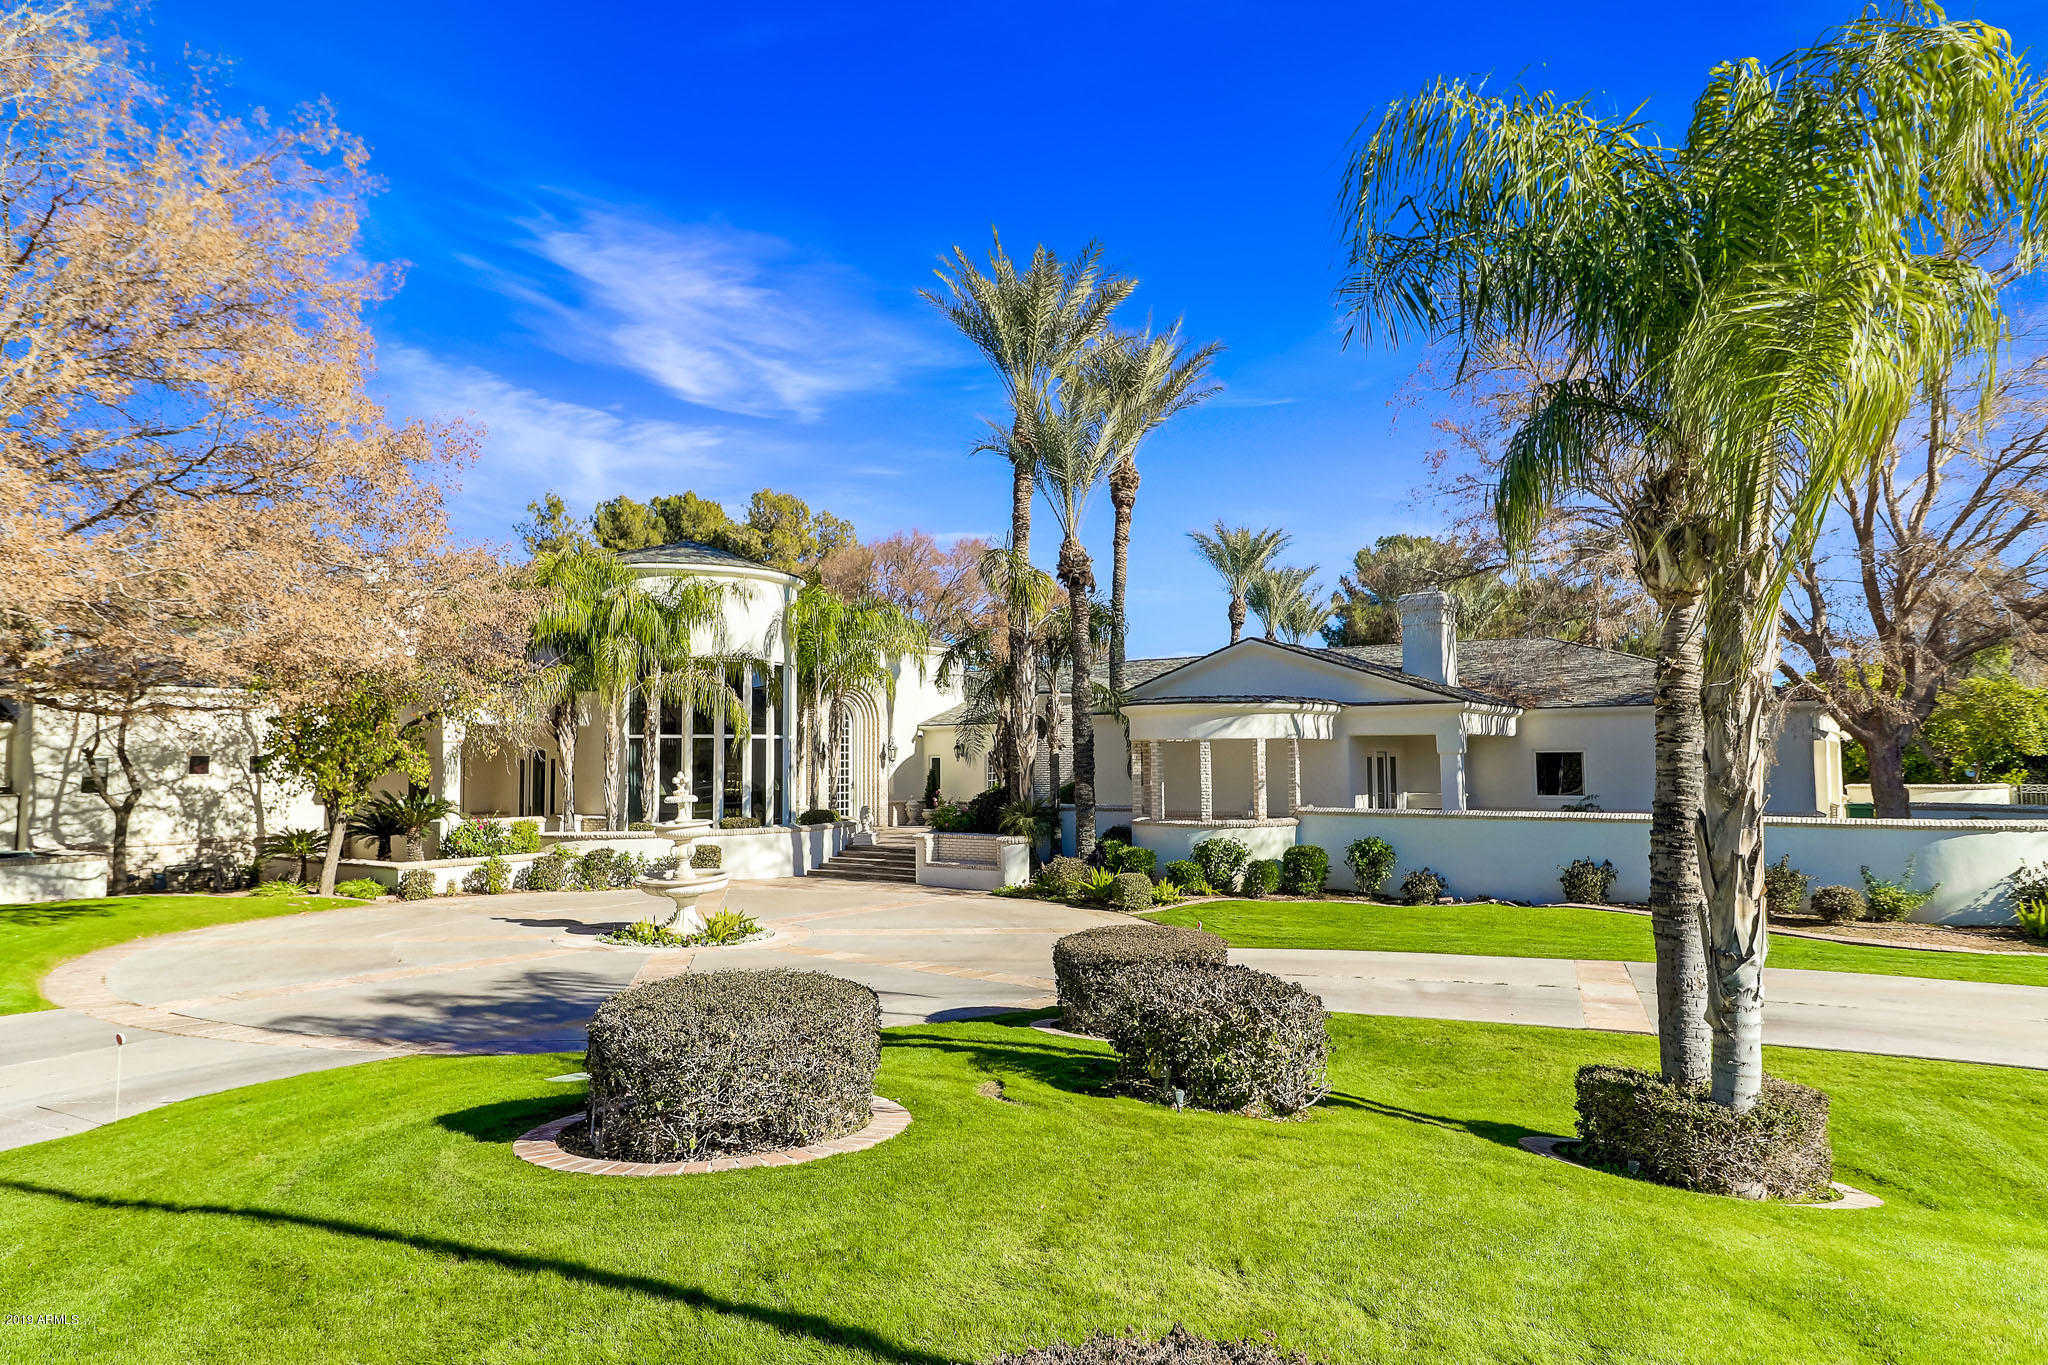 $2,745,000 - 4Br/6Ba - Home for Sale in Paradise View Estates, Paradise Valley